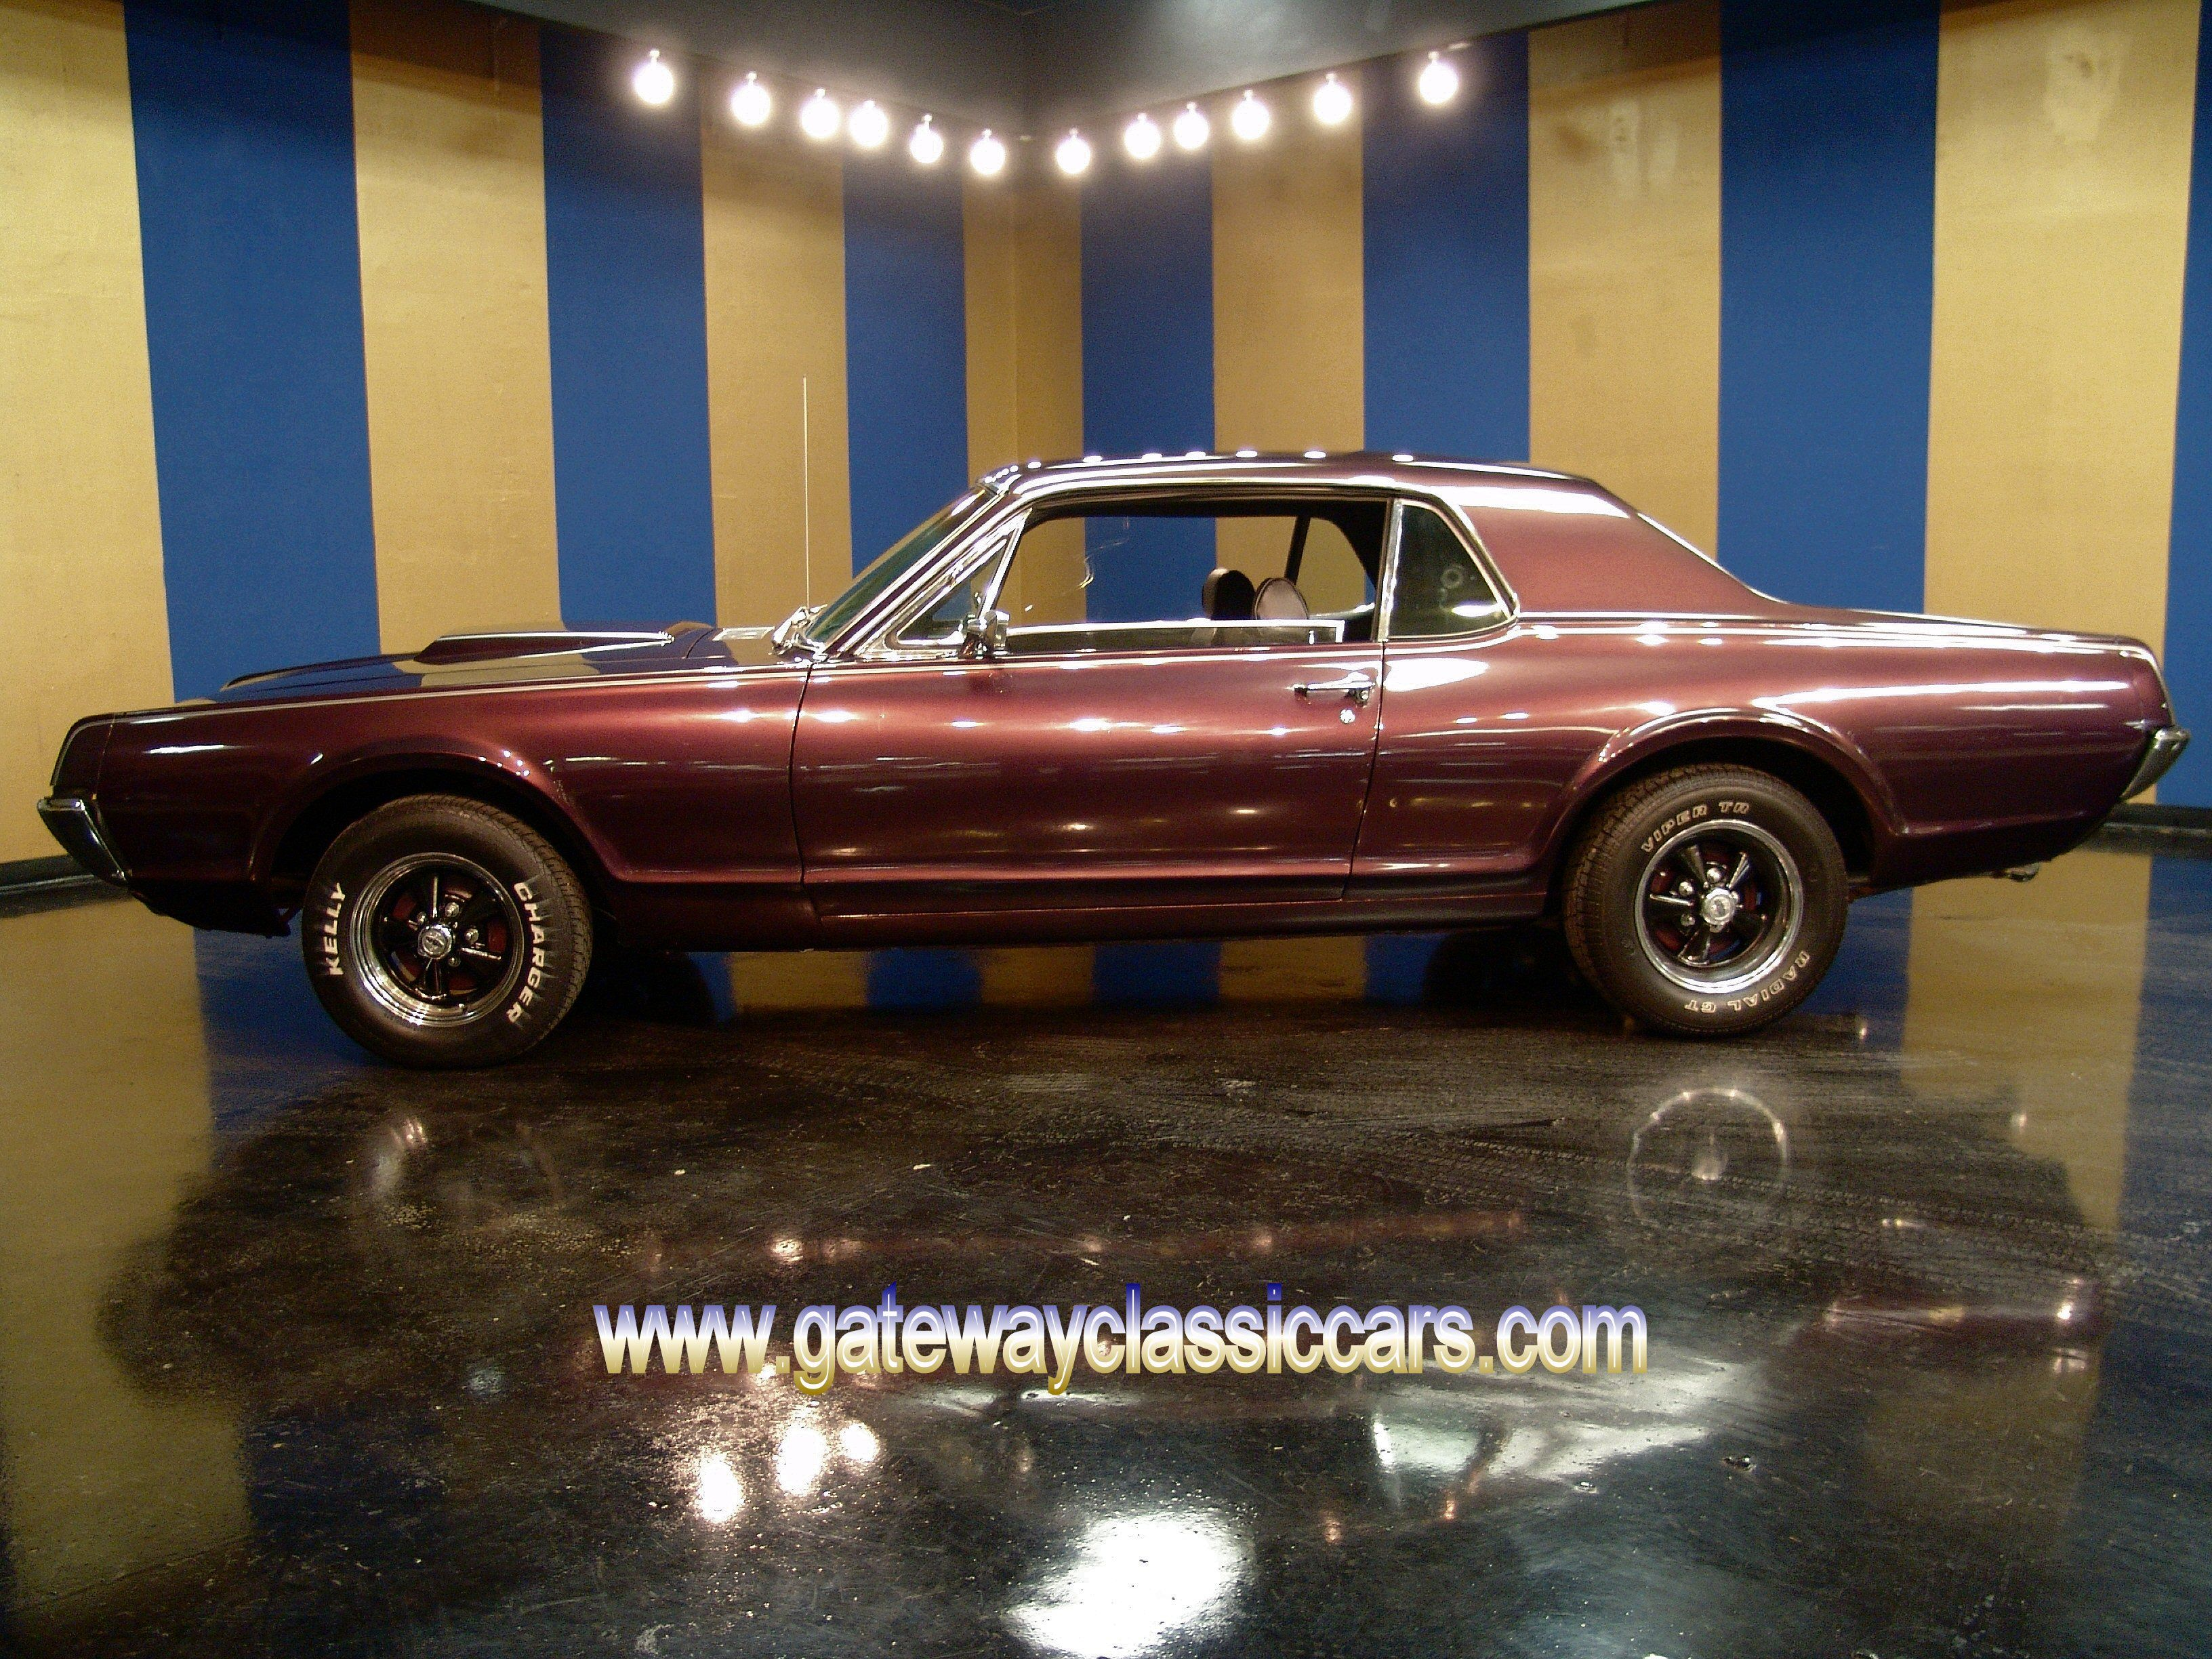 Looks like it\'s in a circus | My FAV Car Cougar | Pinterest | Cars